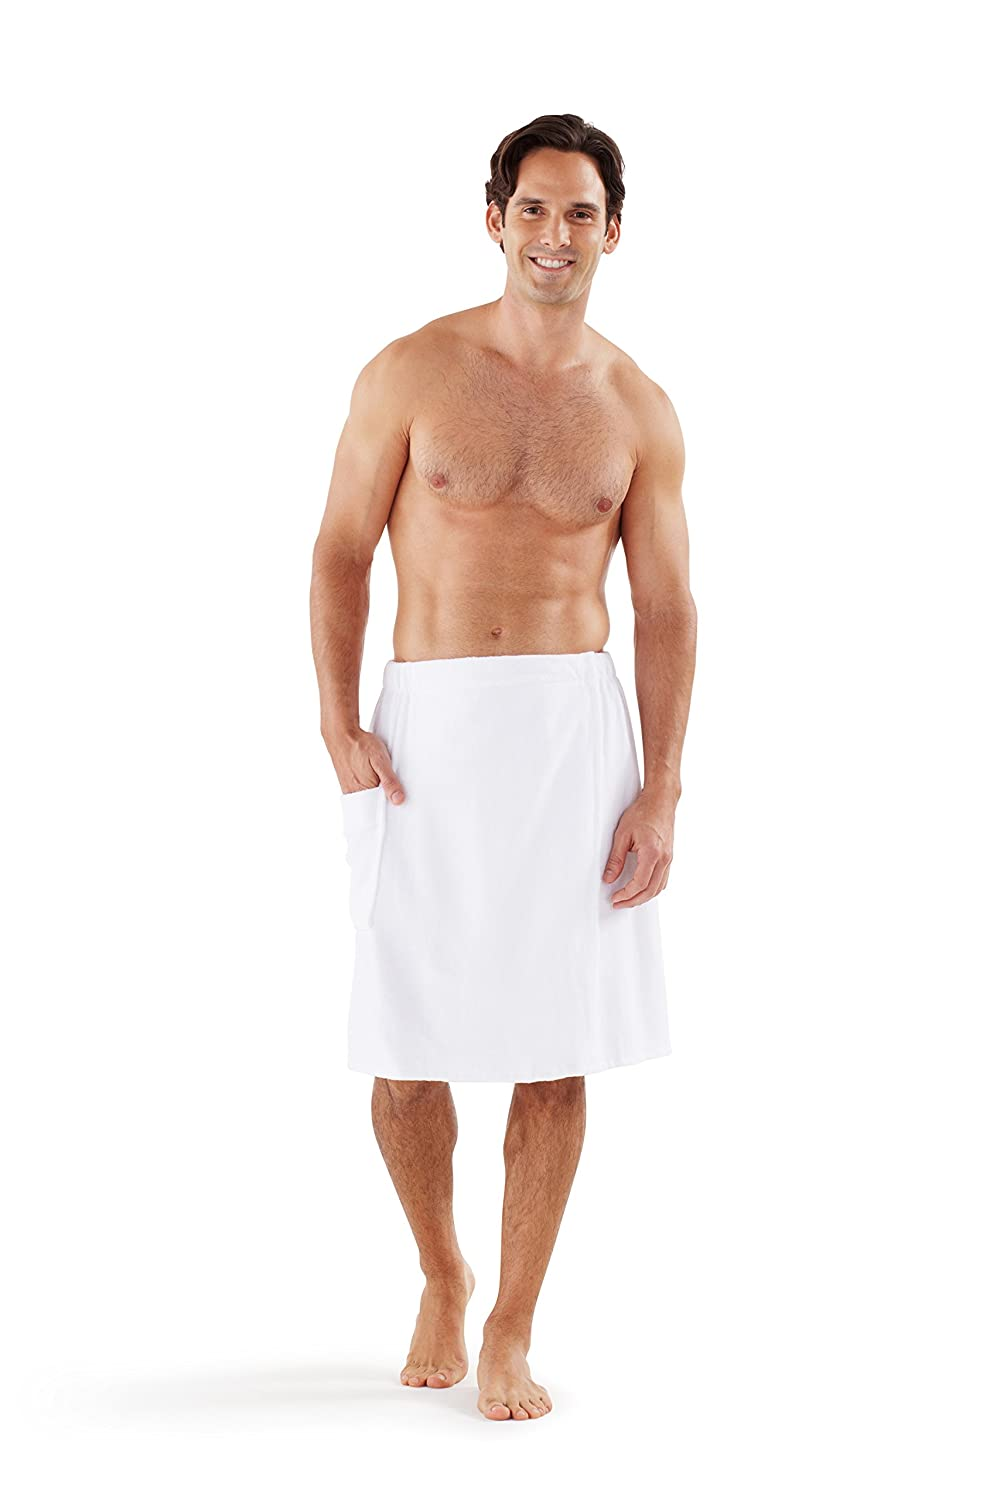 Boca Terry Mens Spa Wrap - 100% Cotton Spa, Gym, Bath Towel - Large, 2XL, 4XL